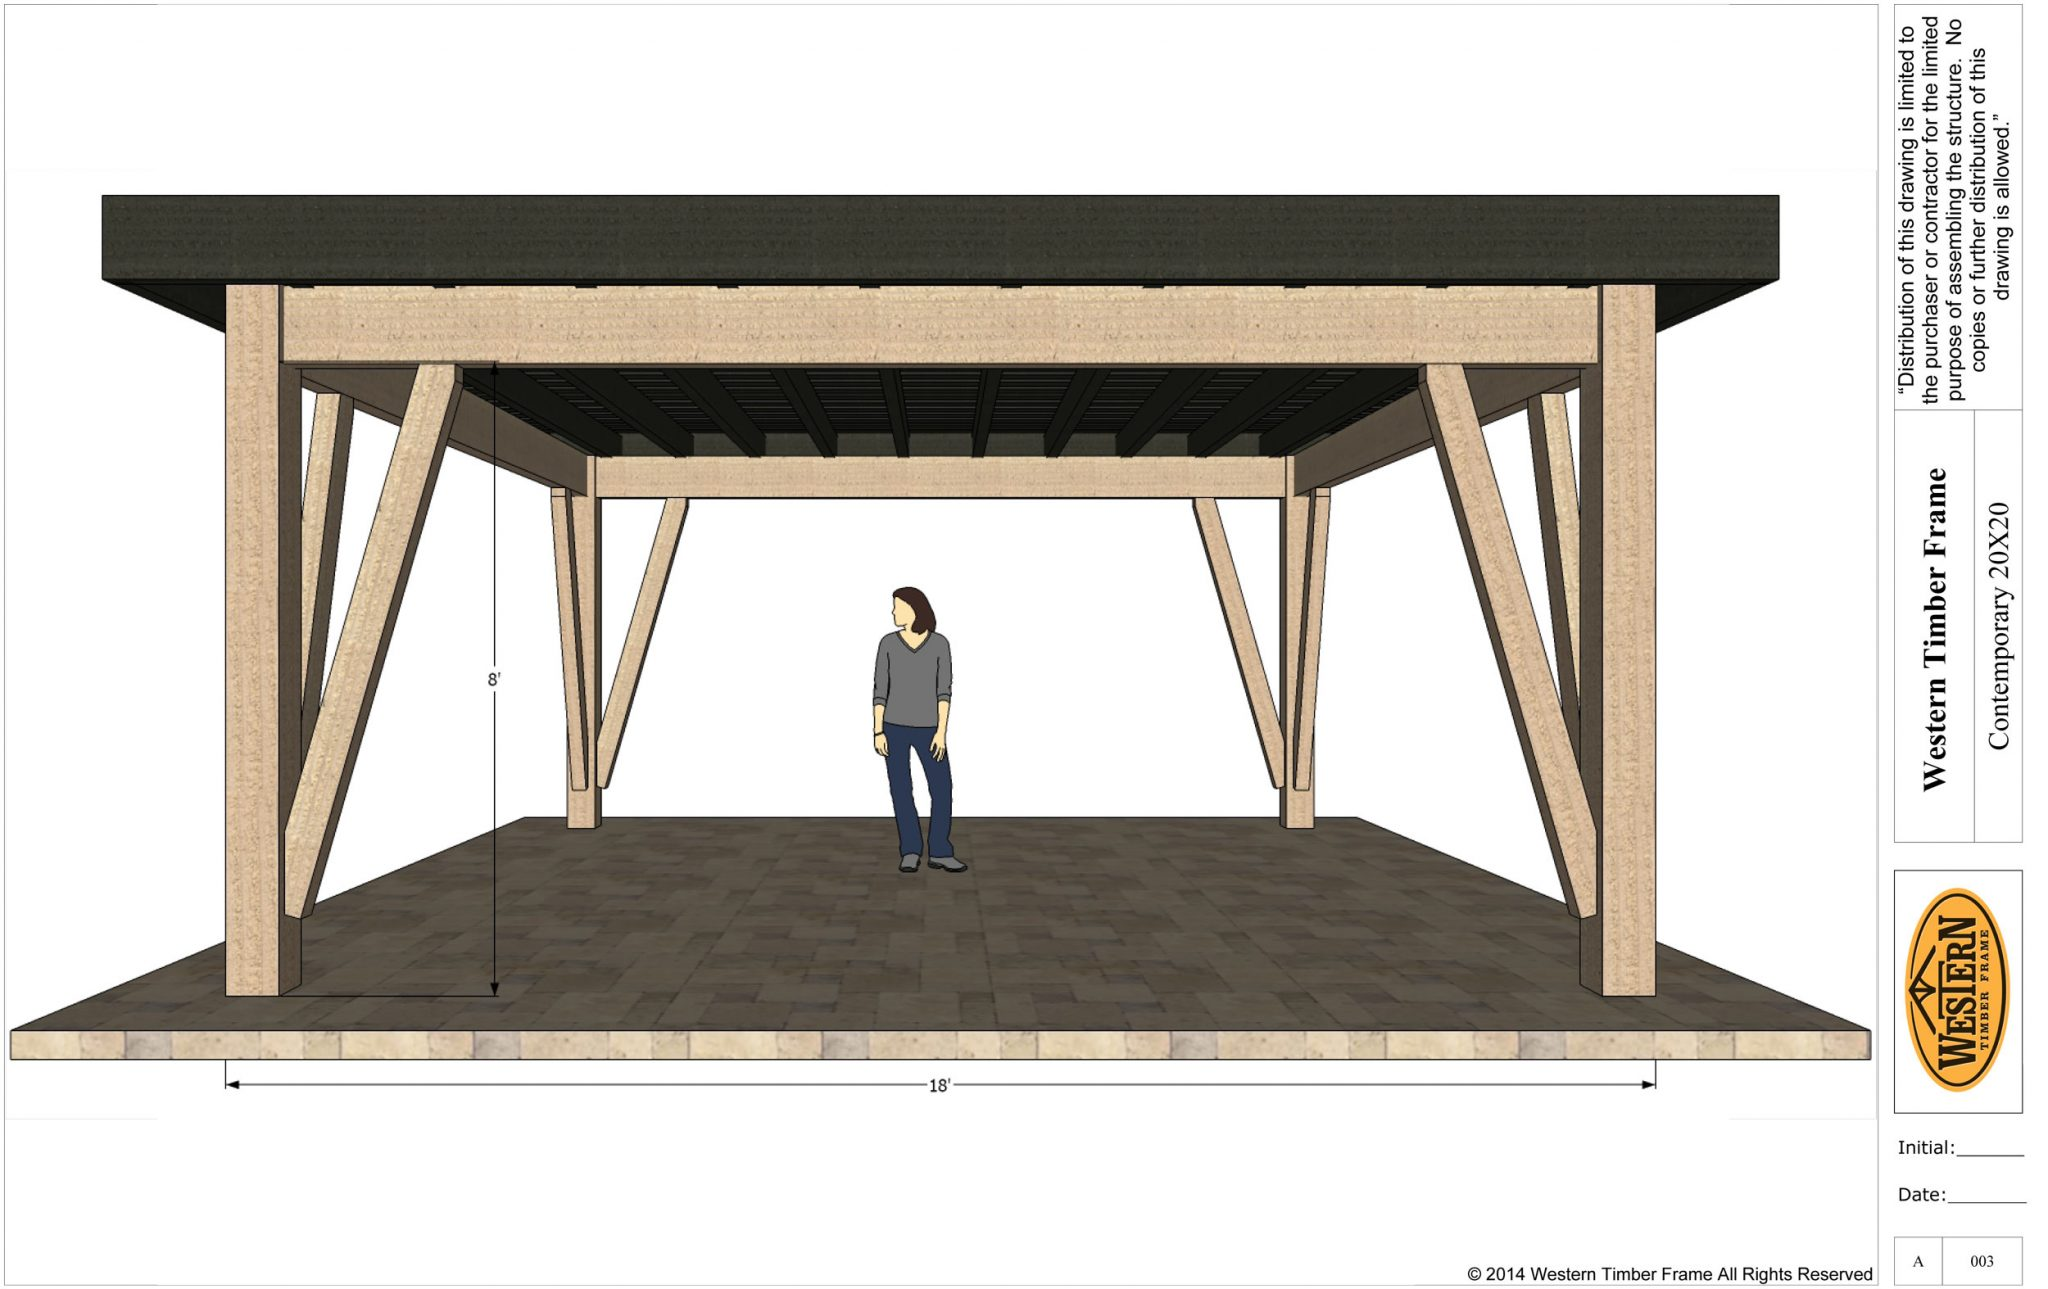 New Contemporary 20x20 DIY Timber Frame Pavilion Plan | Western ...